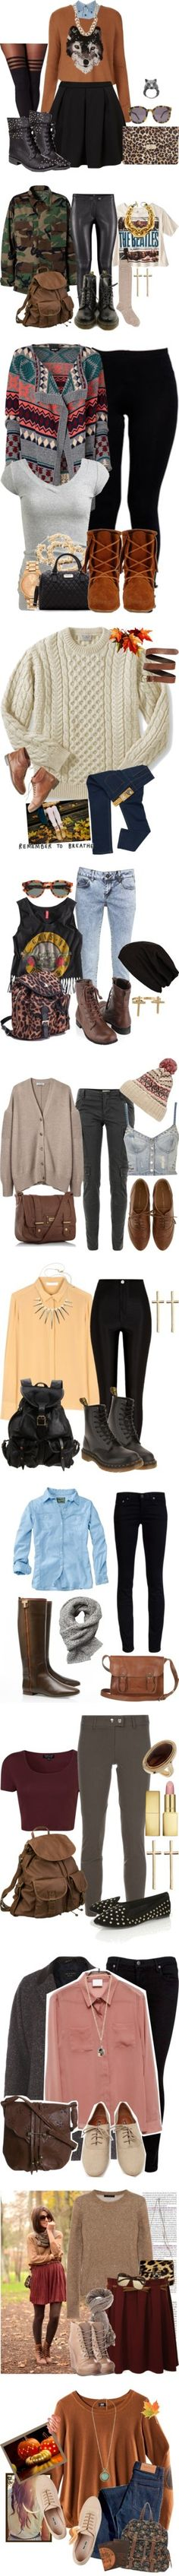 Unique fall outfits  I like most of them because they are different than the typical boots/cardigan/jeans combo that I sometimes get bored of!